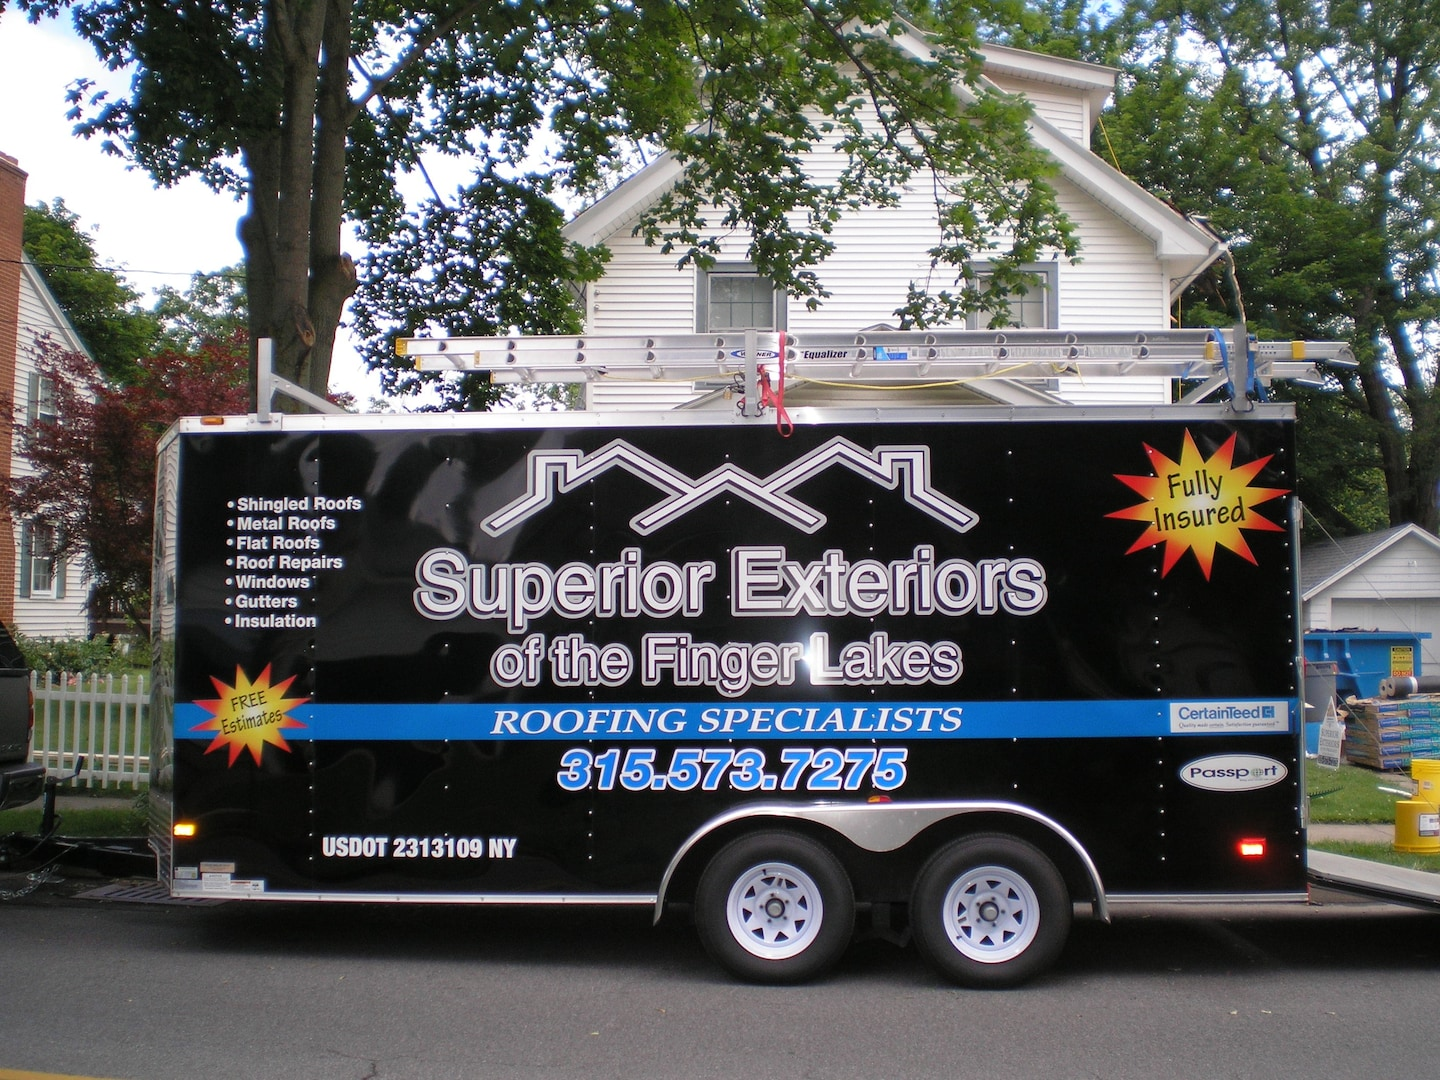 Superior Exteriors of the Finger Lakes